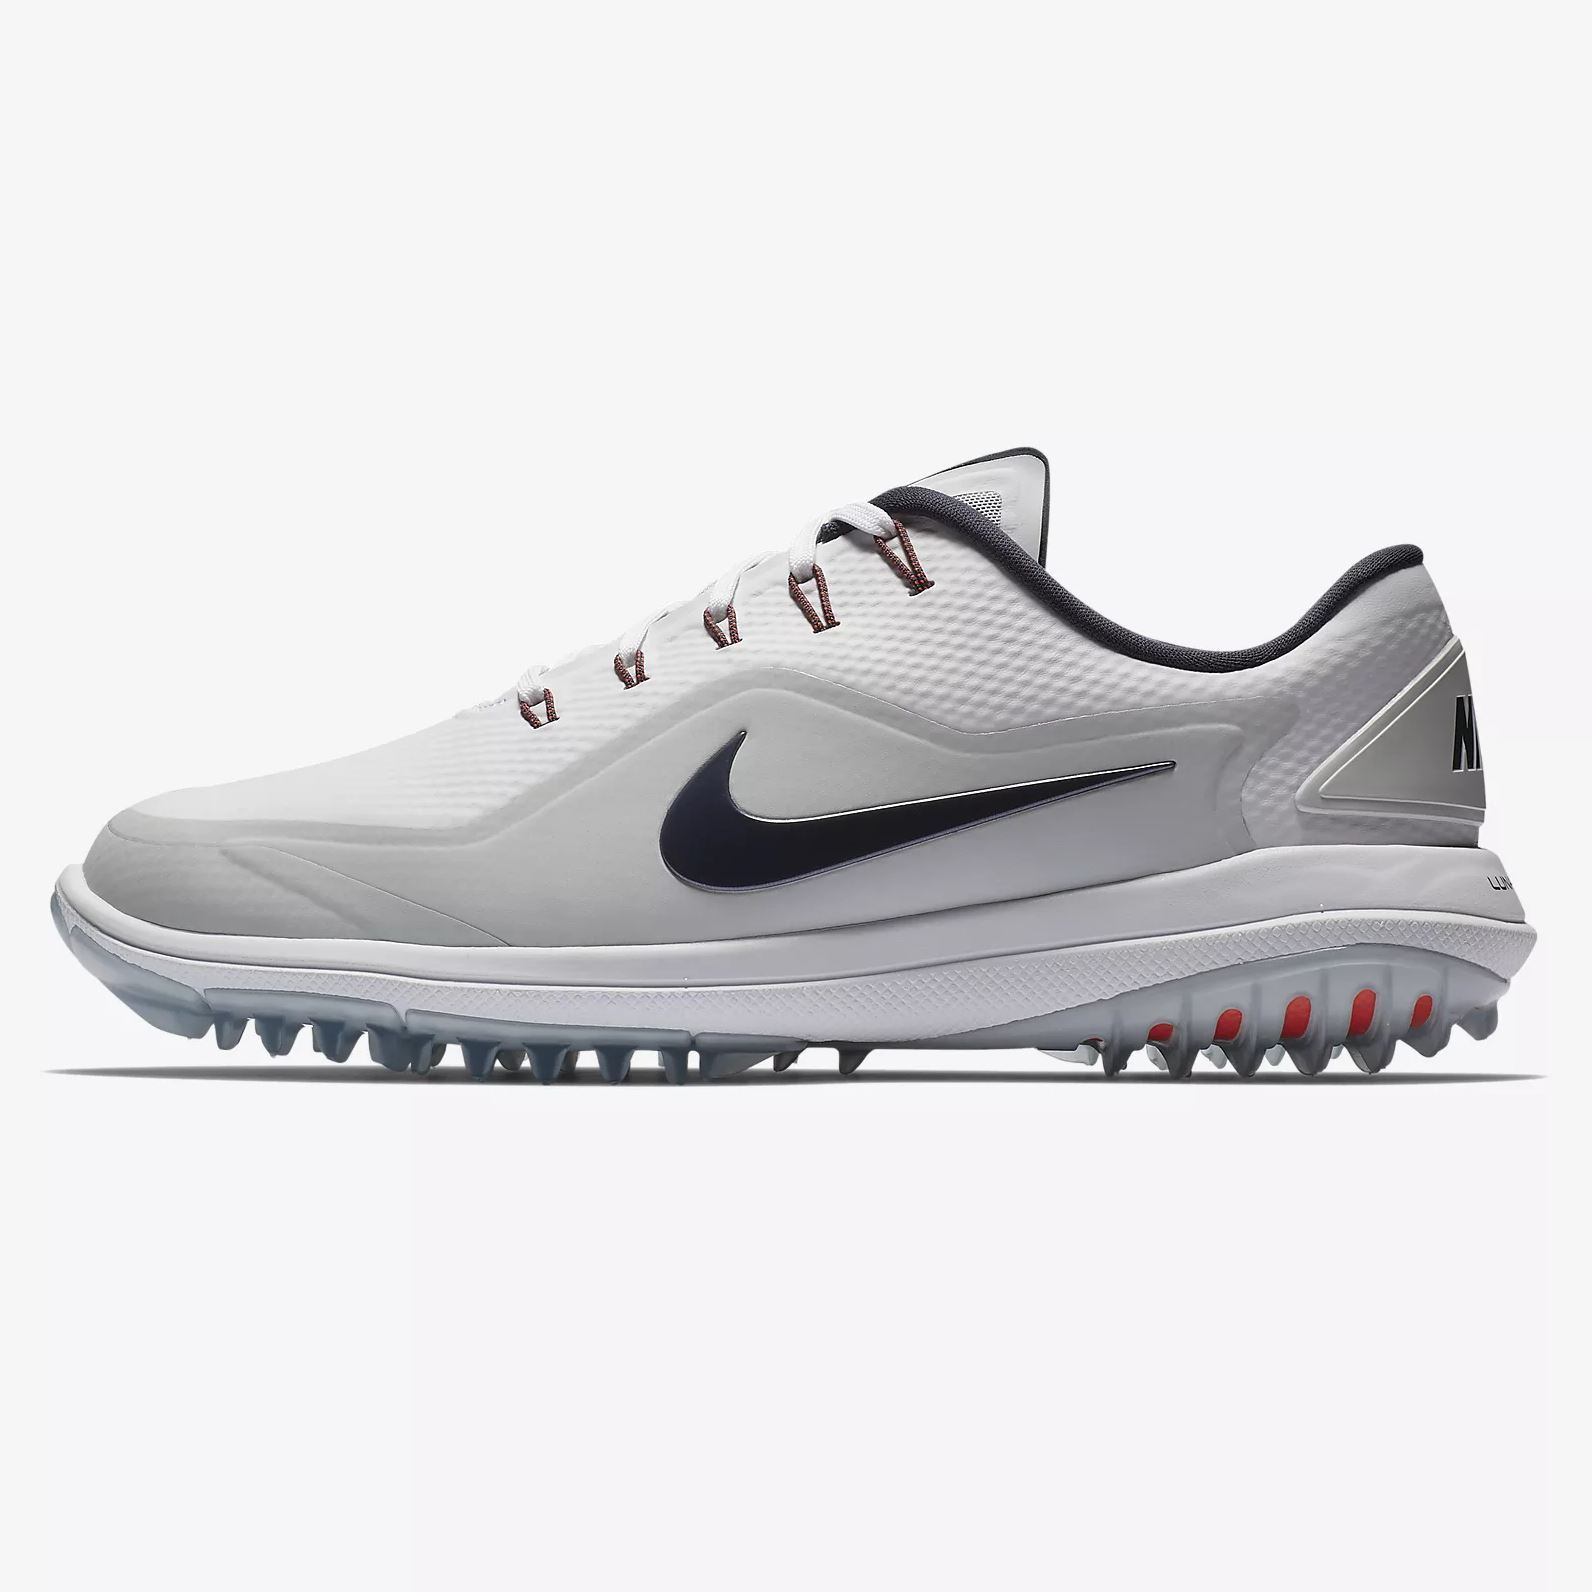 wholesale dealer f44be a709c Picture of Nike Lunar Control Vapor 2 Golf Shoes - White Silver